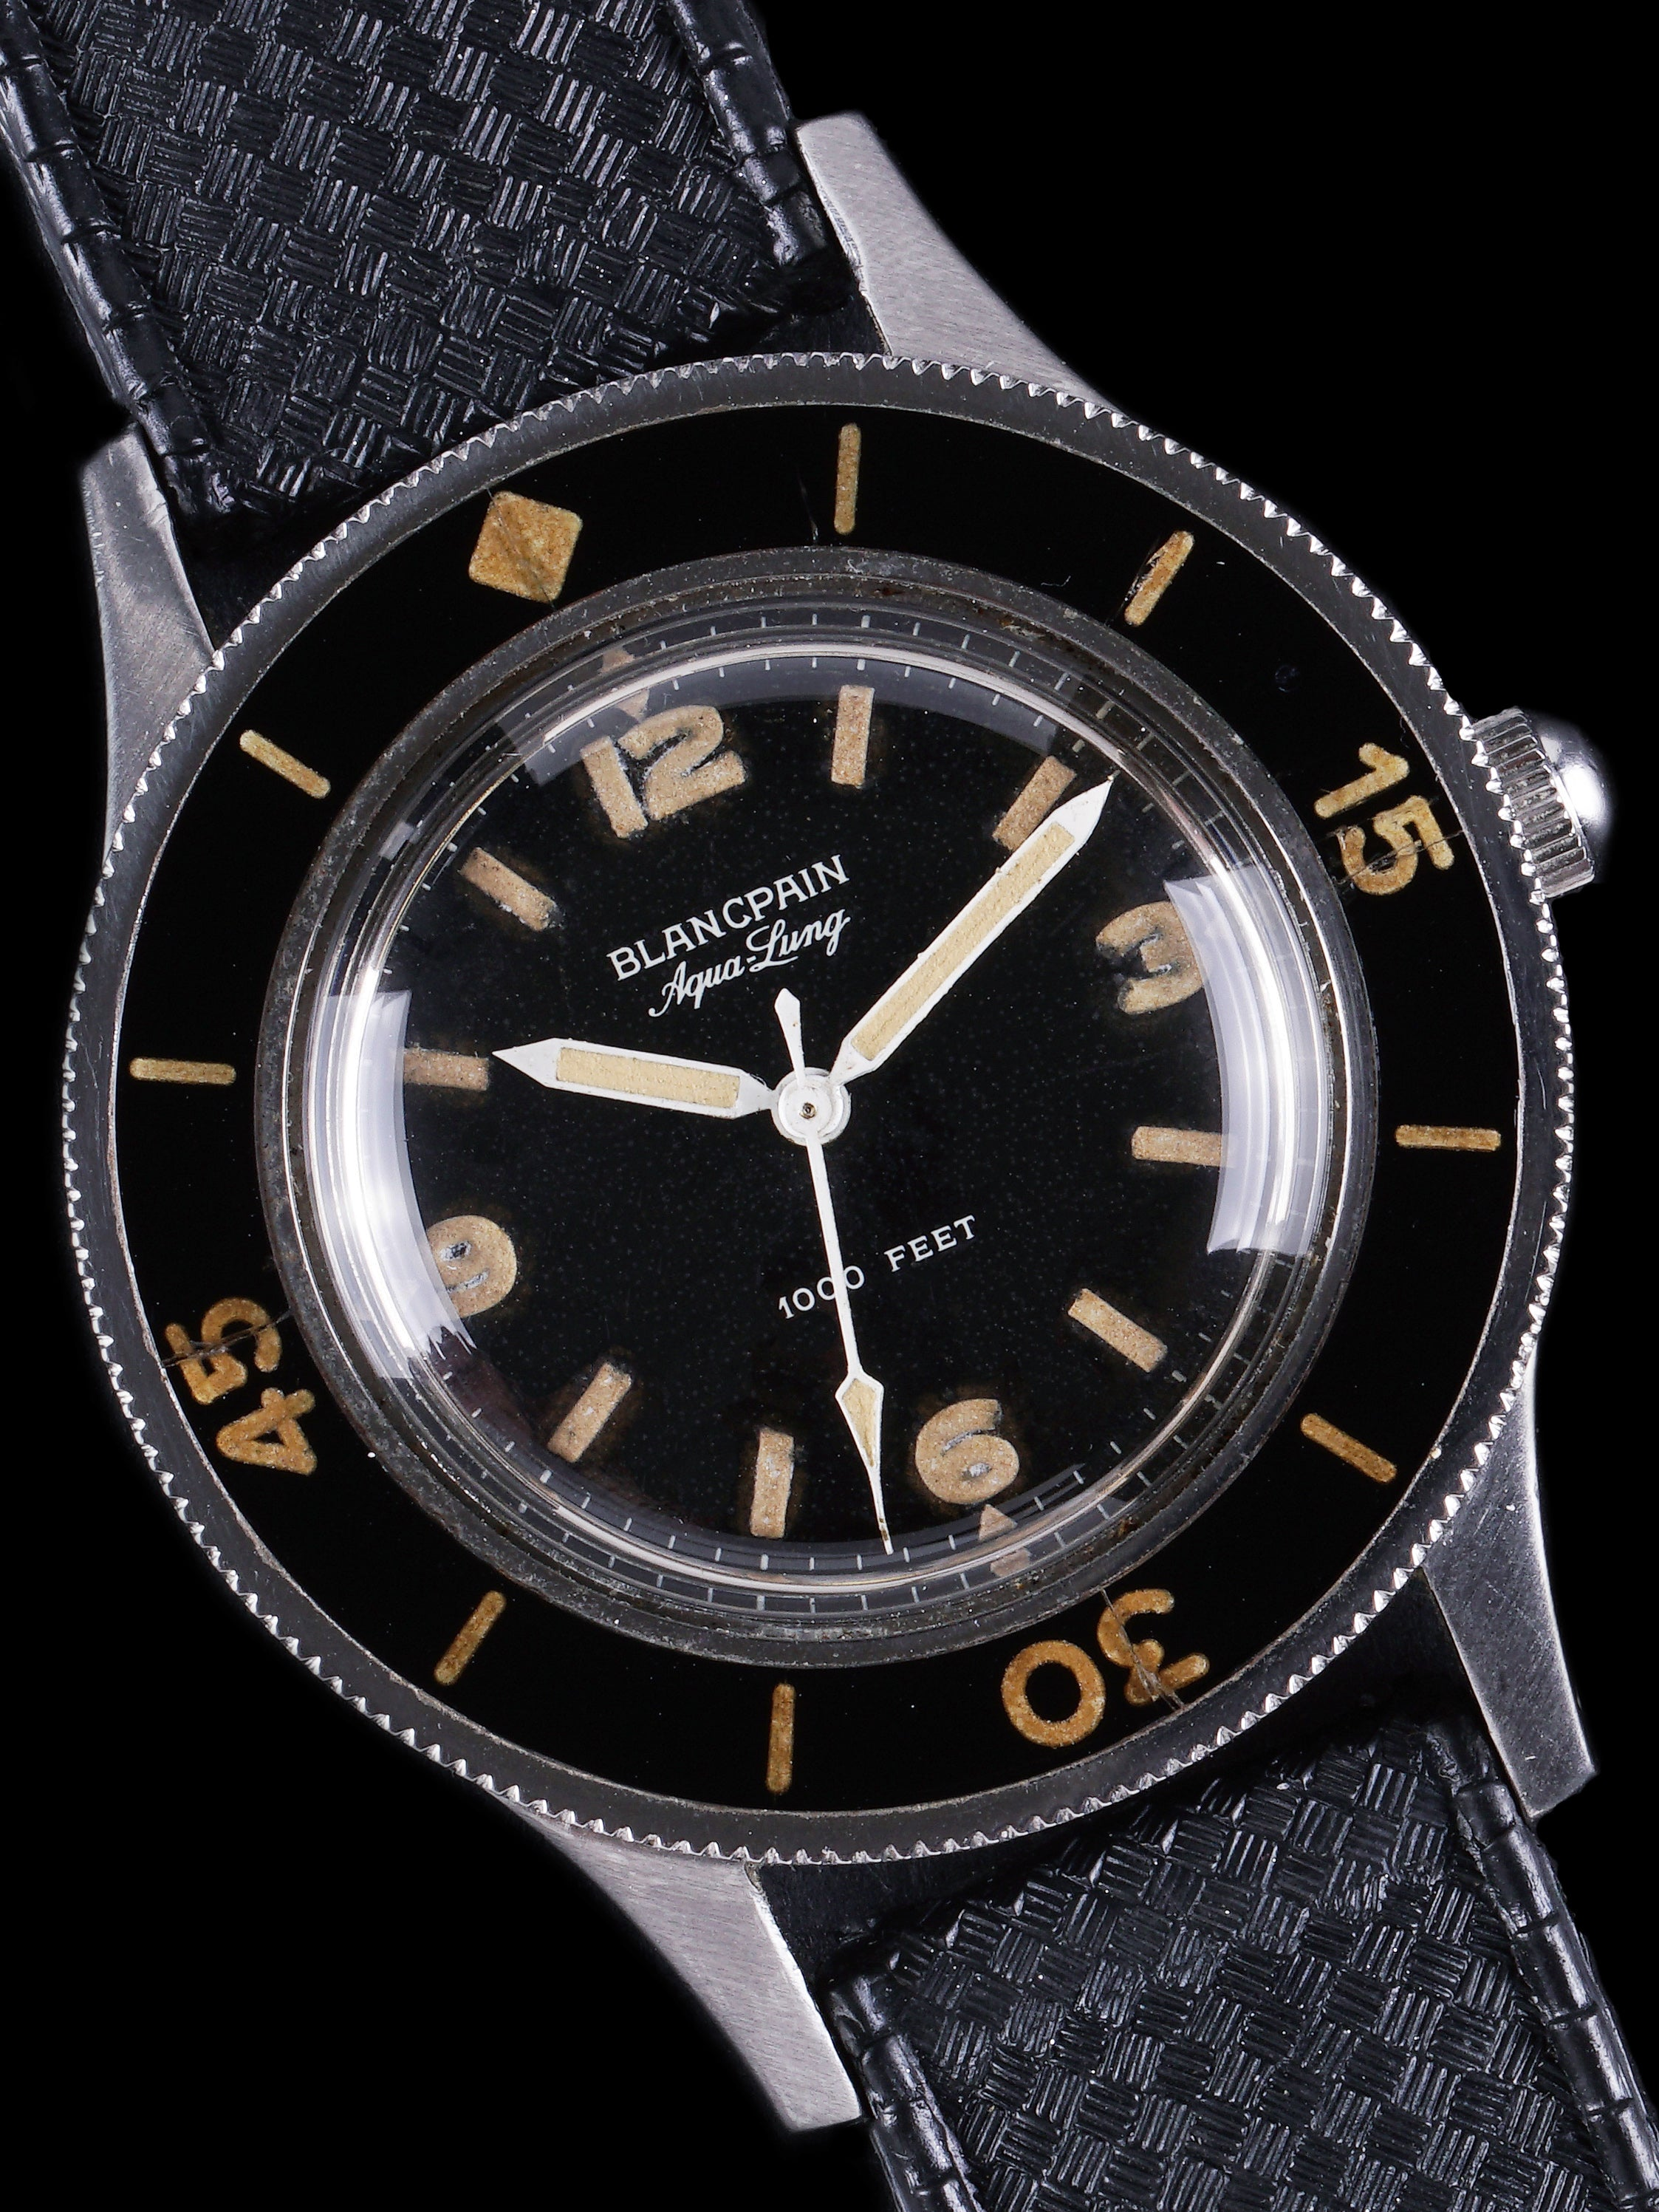 1953 Blancpain Fifty Fathoms (Ref. 2462) Aqualung 1000FT